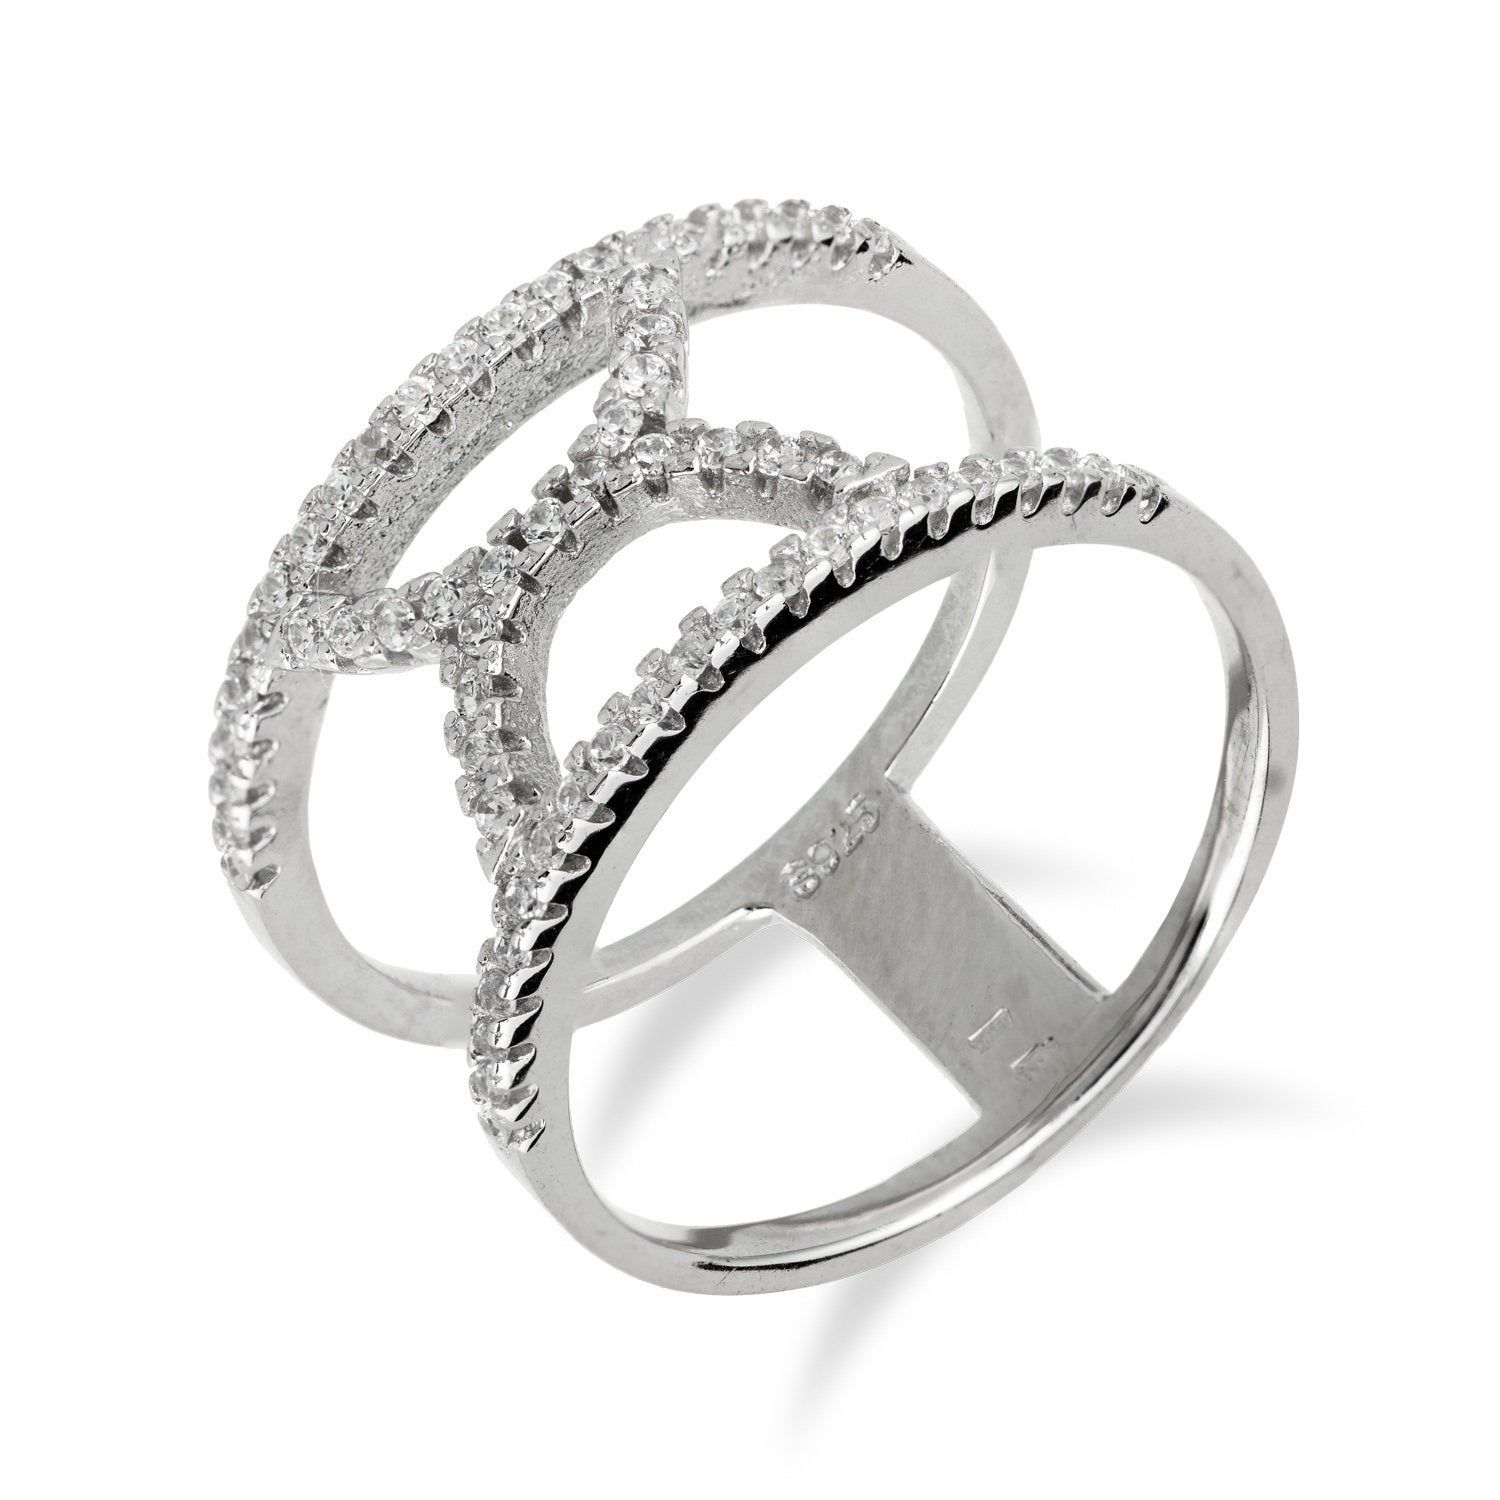 Wide Half Circle Ring In 925 Sterling Silver With Cubic Zirconia In 2020 925 Silver Rings Silver Rings Circle Ring